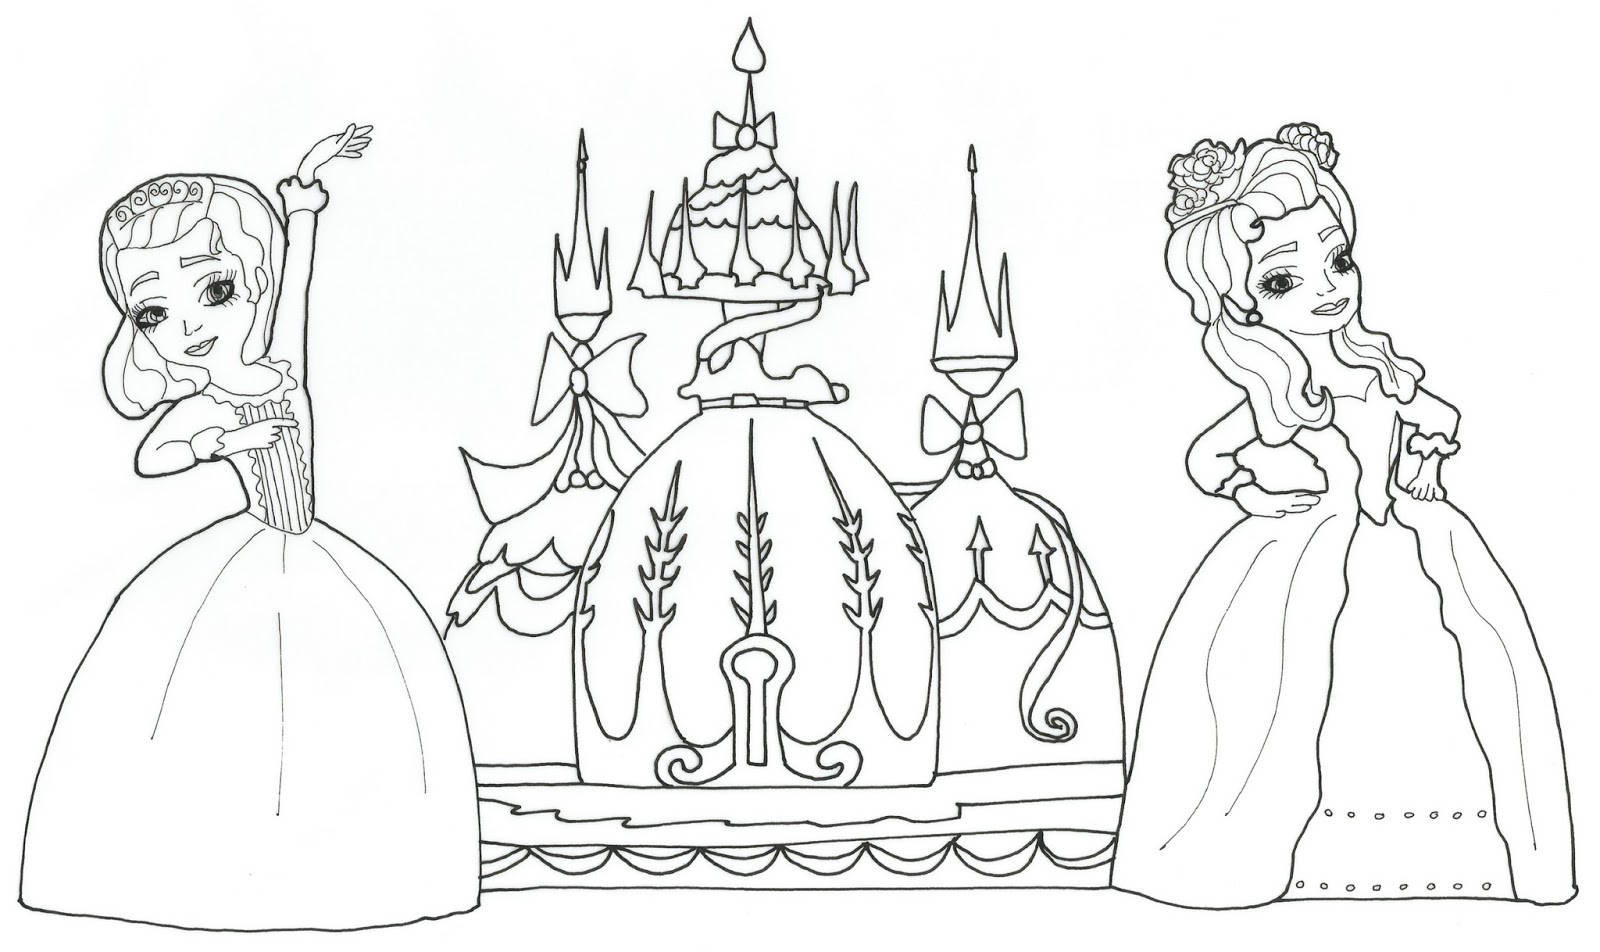 Princess sophia printable coloring pages - Princess Sophia Printable Coloring Pages 24